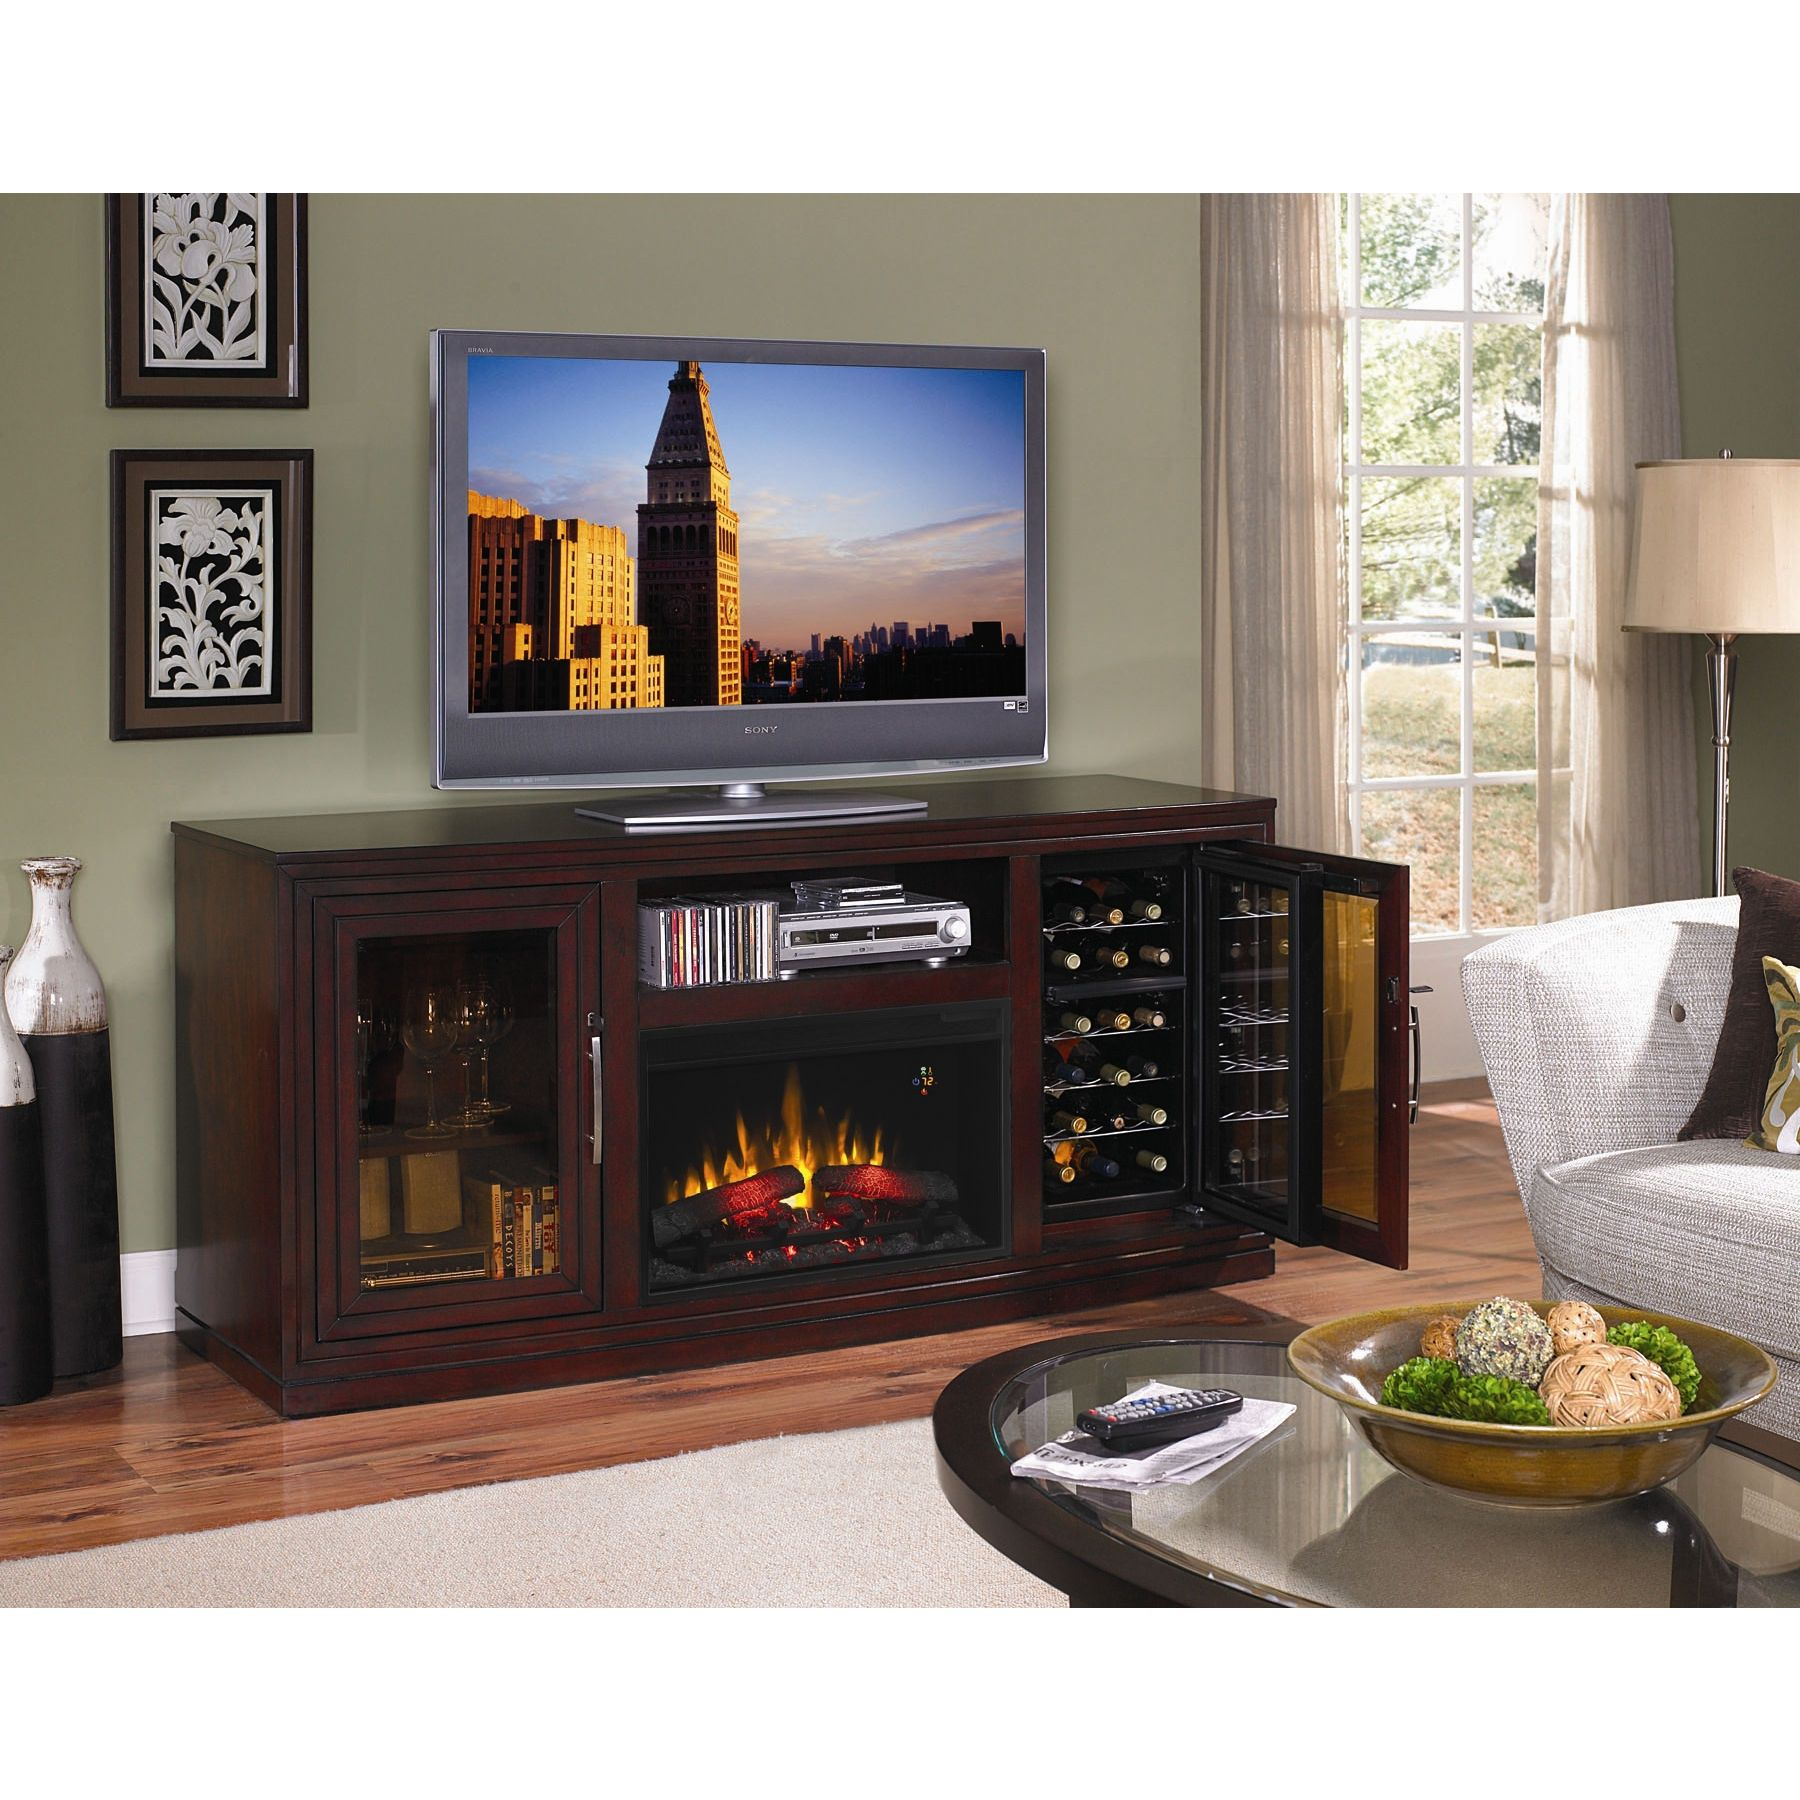 Tv Stand, Fireplace, Wine Rack | For The Home In 2019 | Pinterest with Casey Umber 74 Inch Tv Stands (Image 27 of 30)